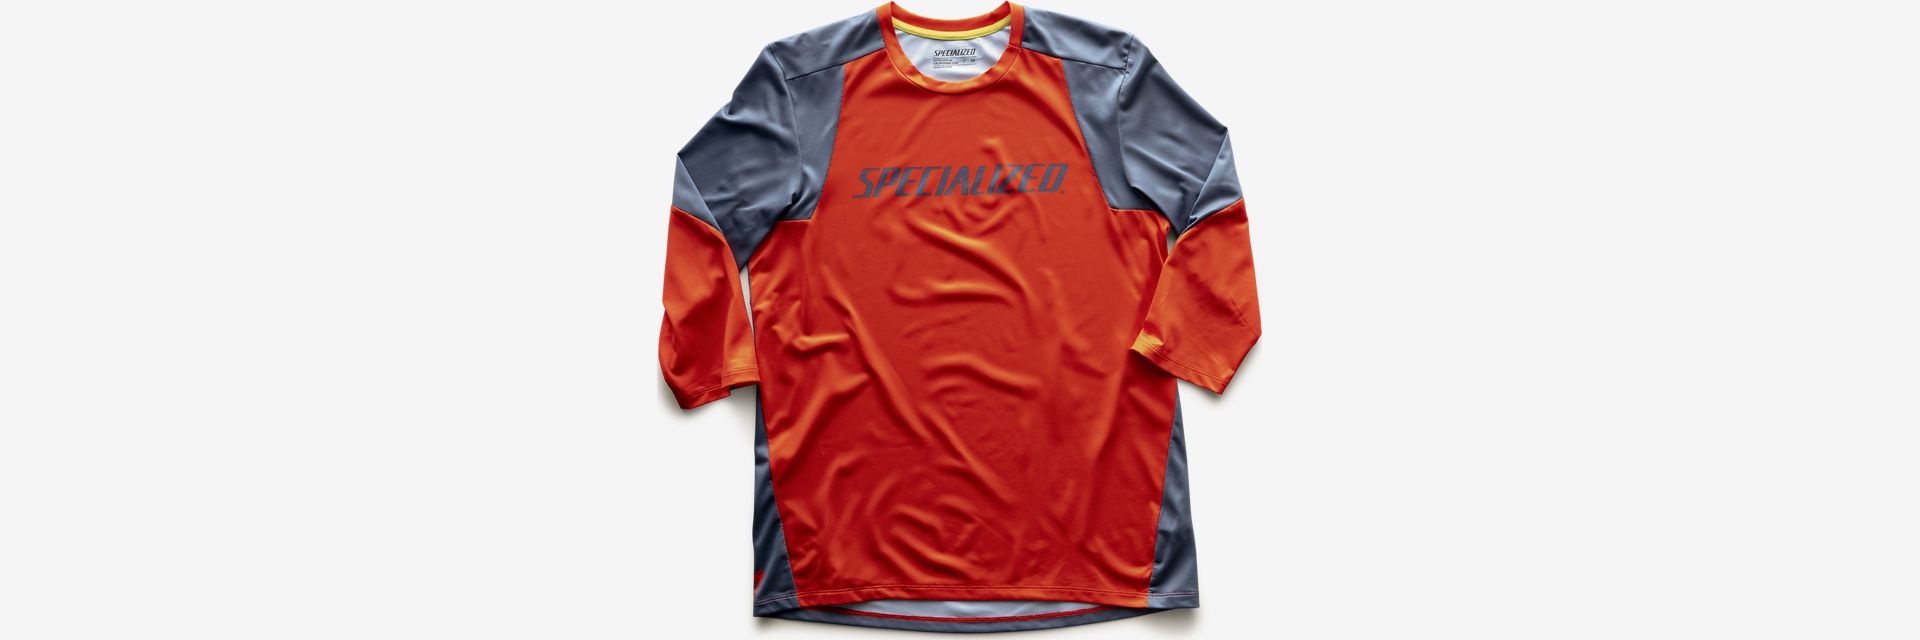 Specialized ENDURO 3/4 JERSEY - Rocket Red/Storm Grey M